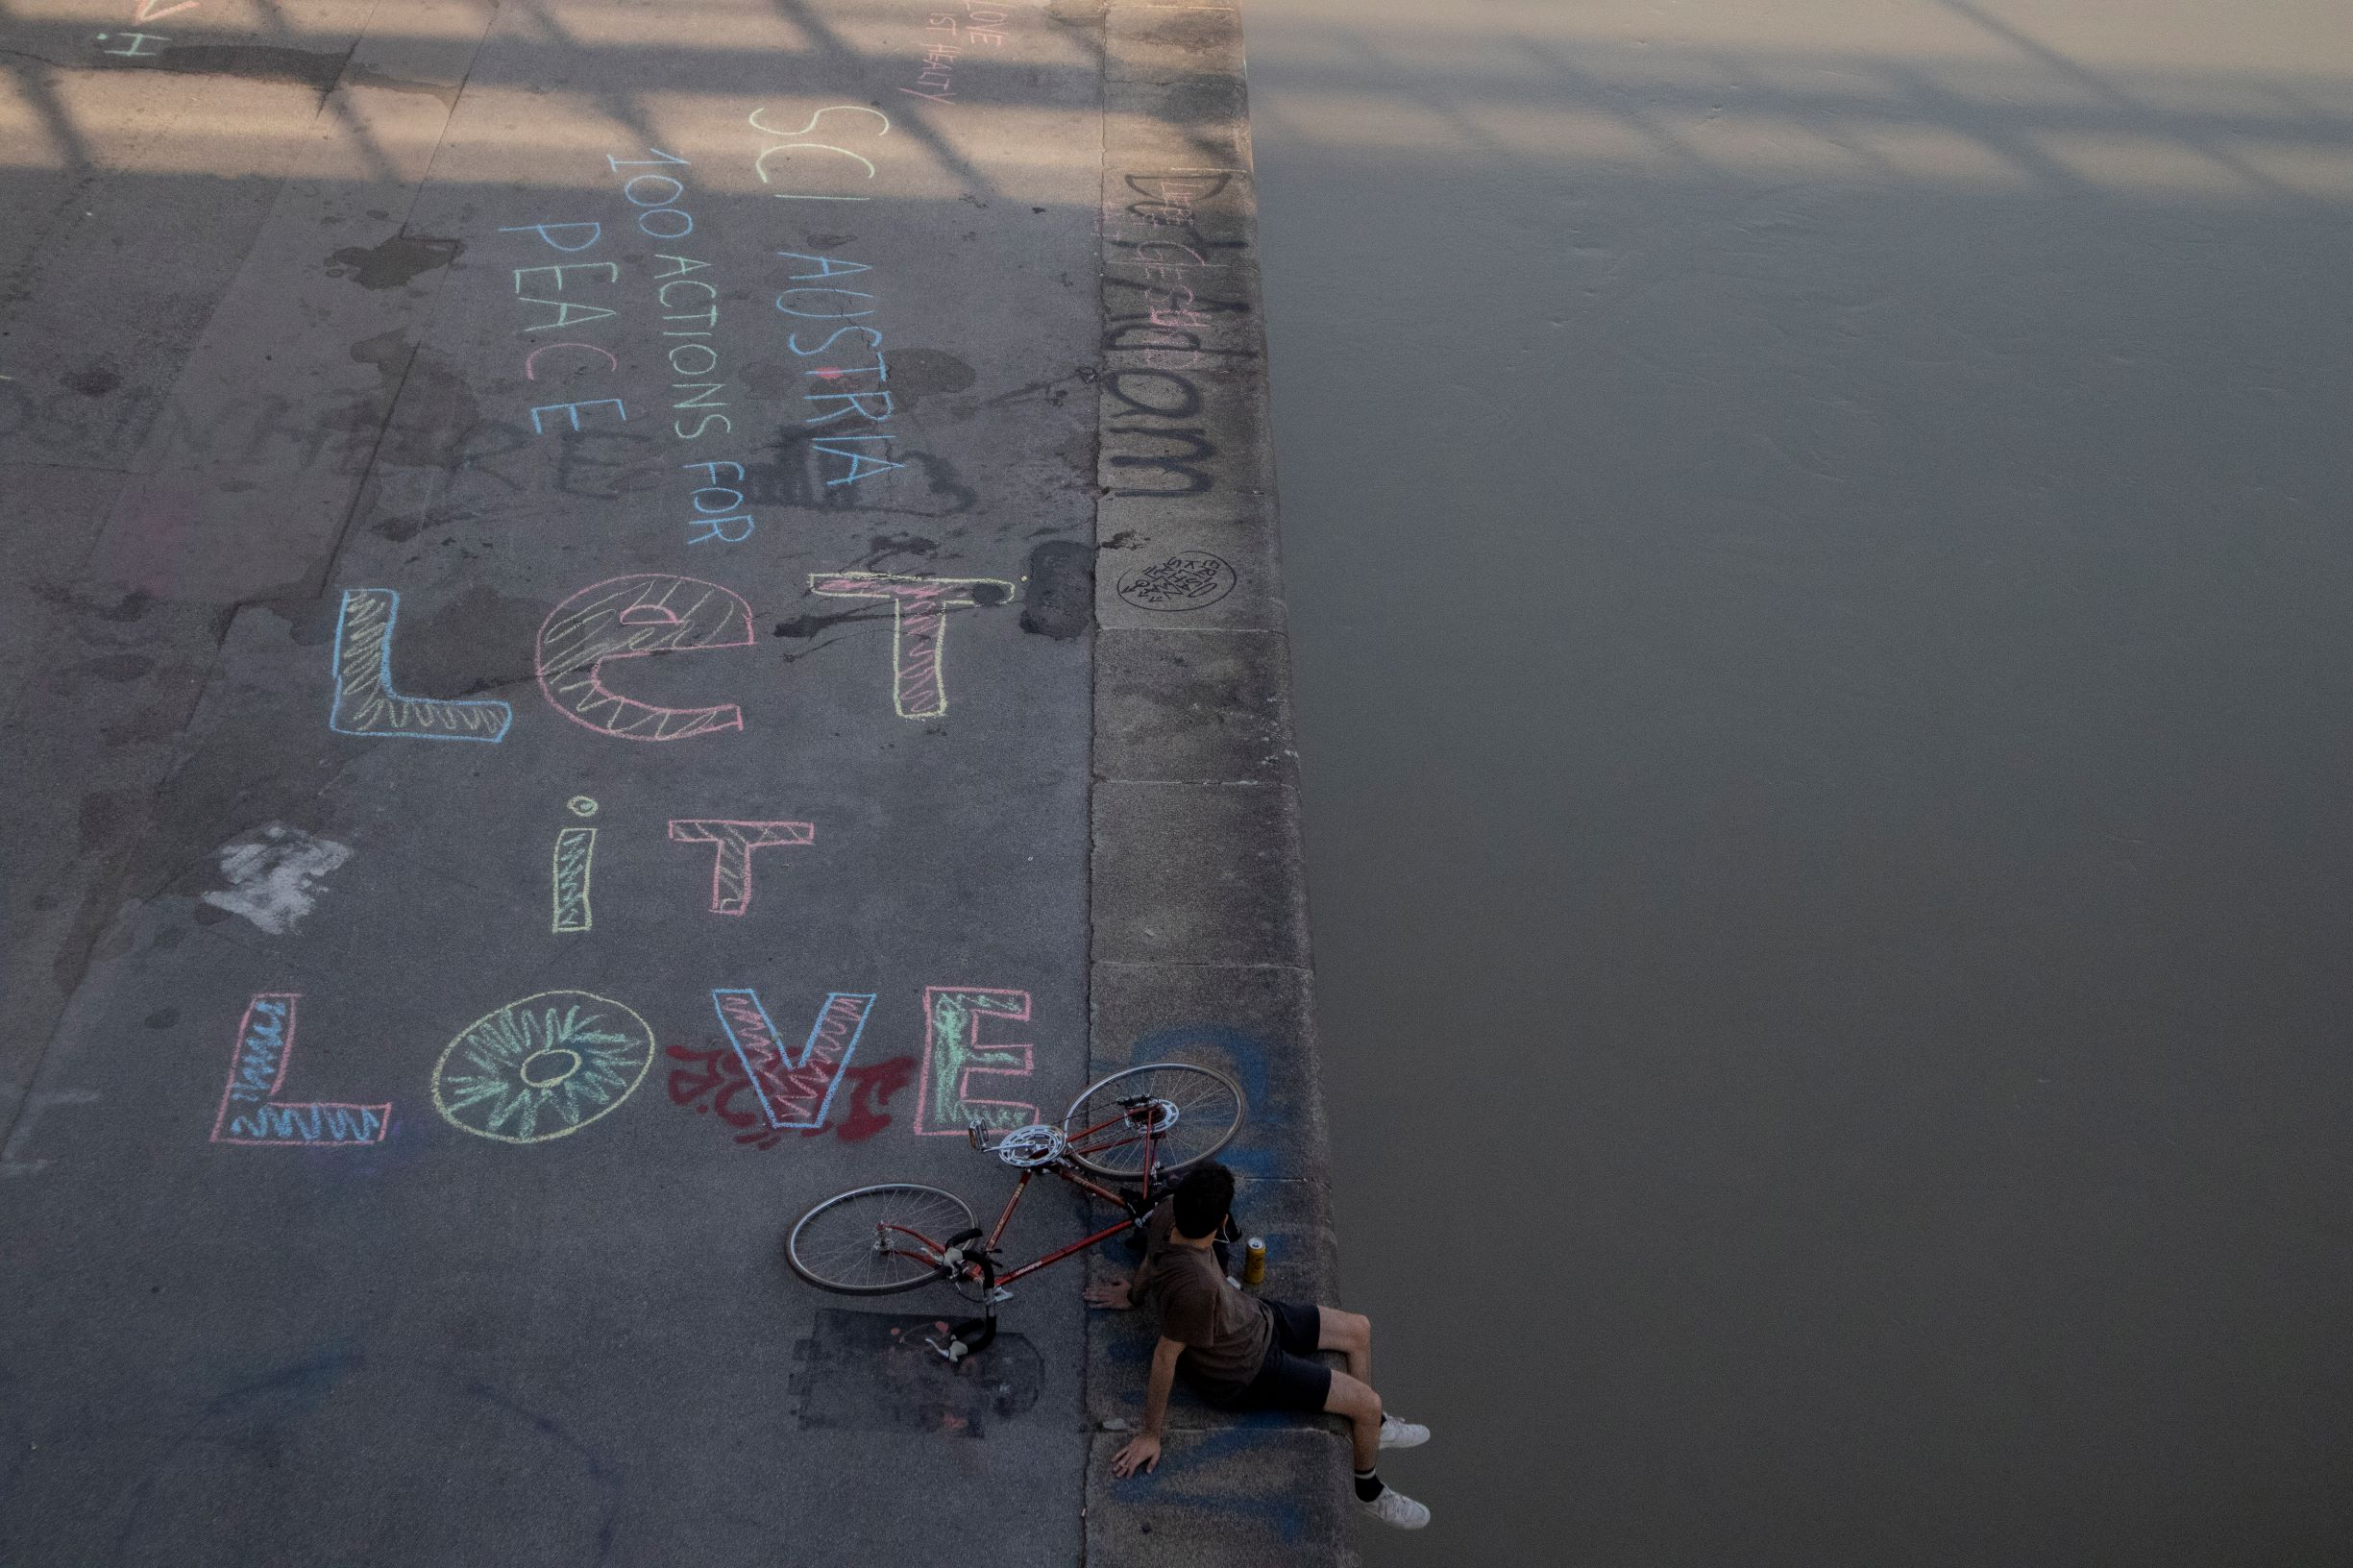 a man sitting by the river with a bike, on one half can be seen the river, in the other is the sidewalk with drawings